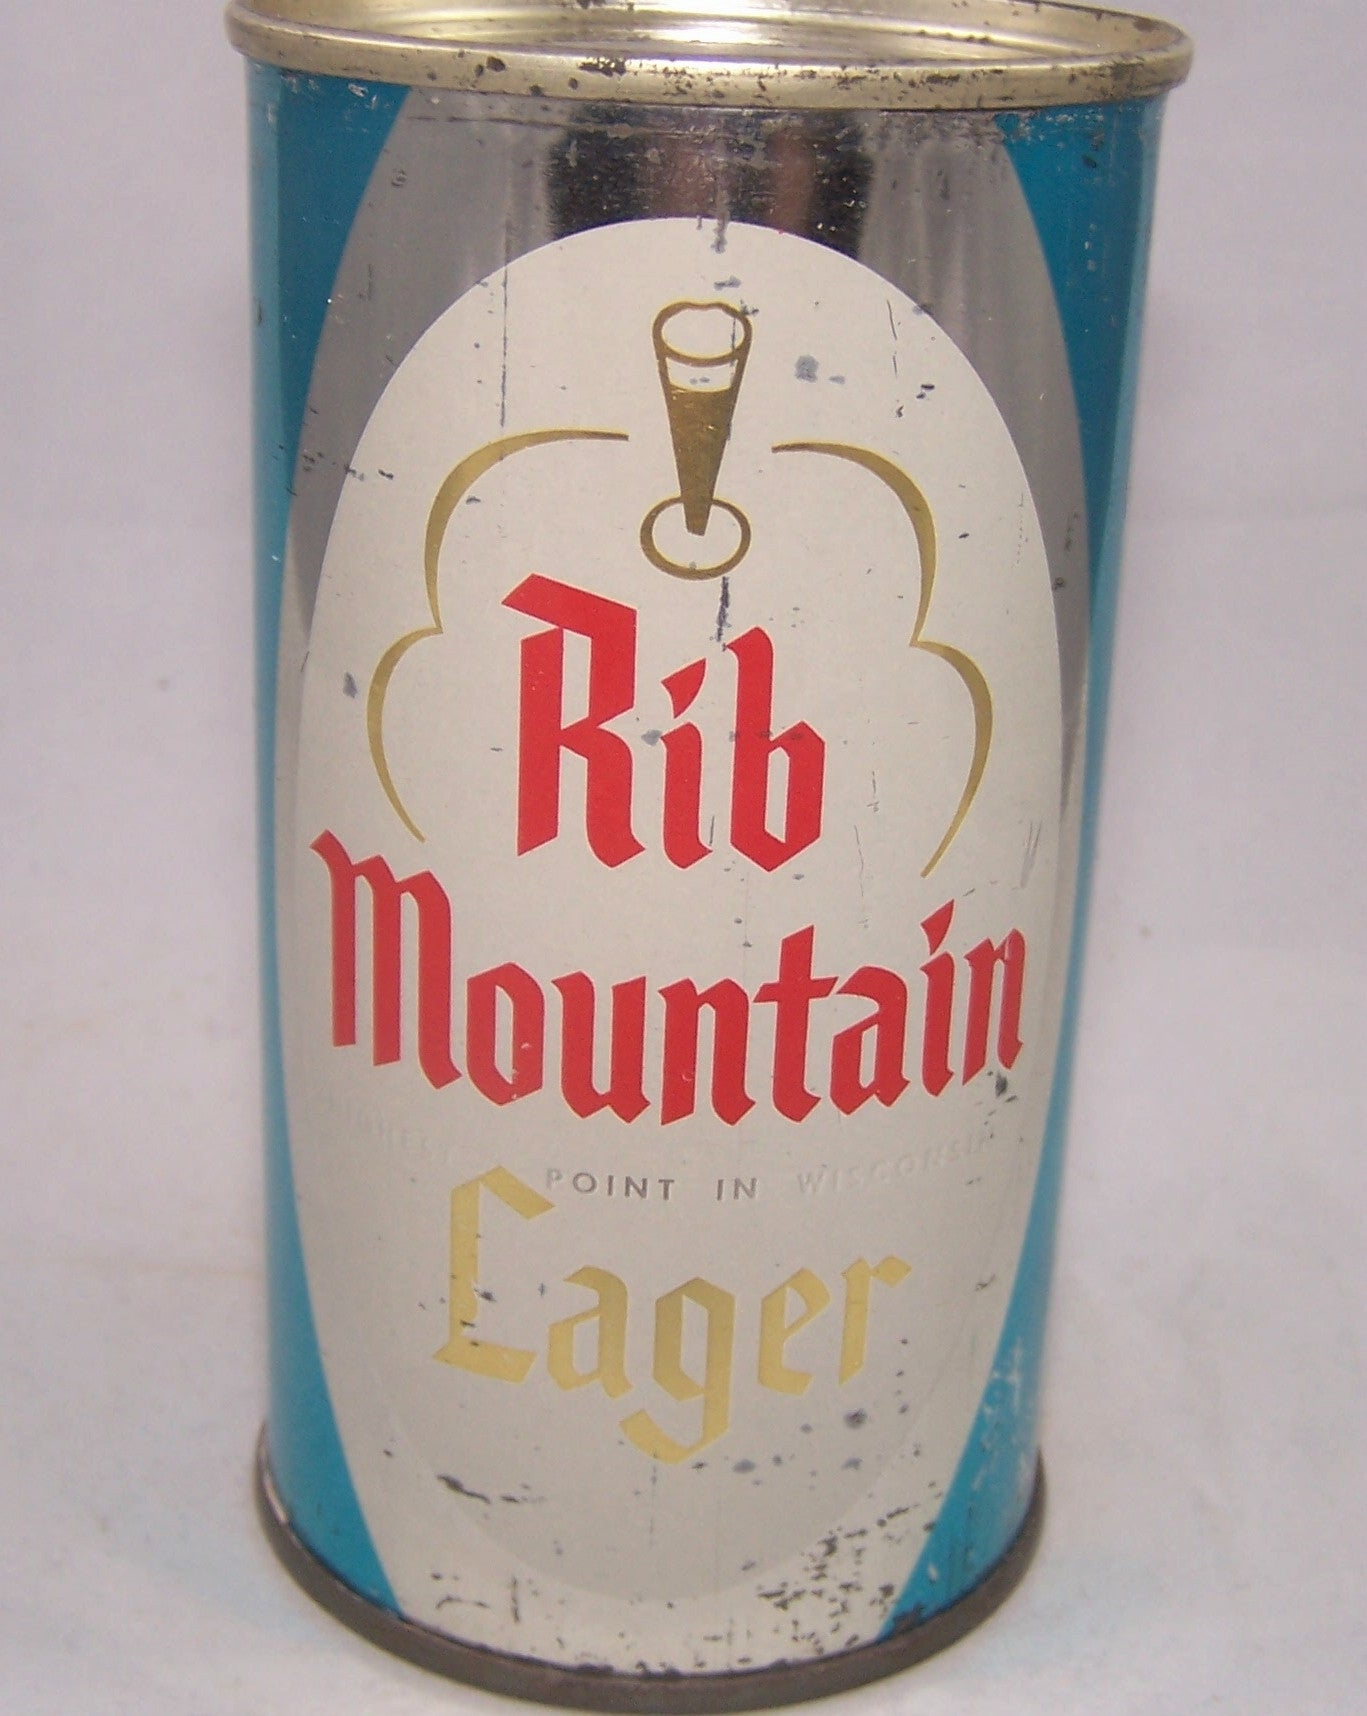 Rib Mountain Lager Beer, USBC 124-35, Grade 1- Sold on 03/22/17